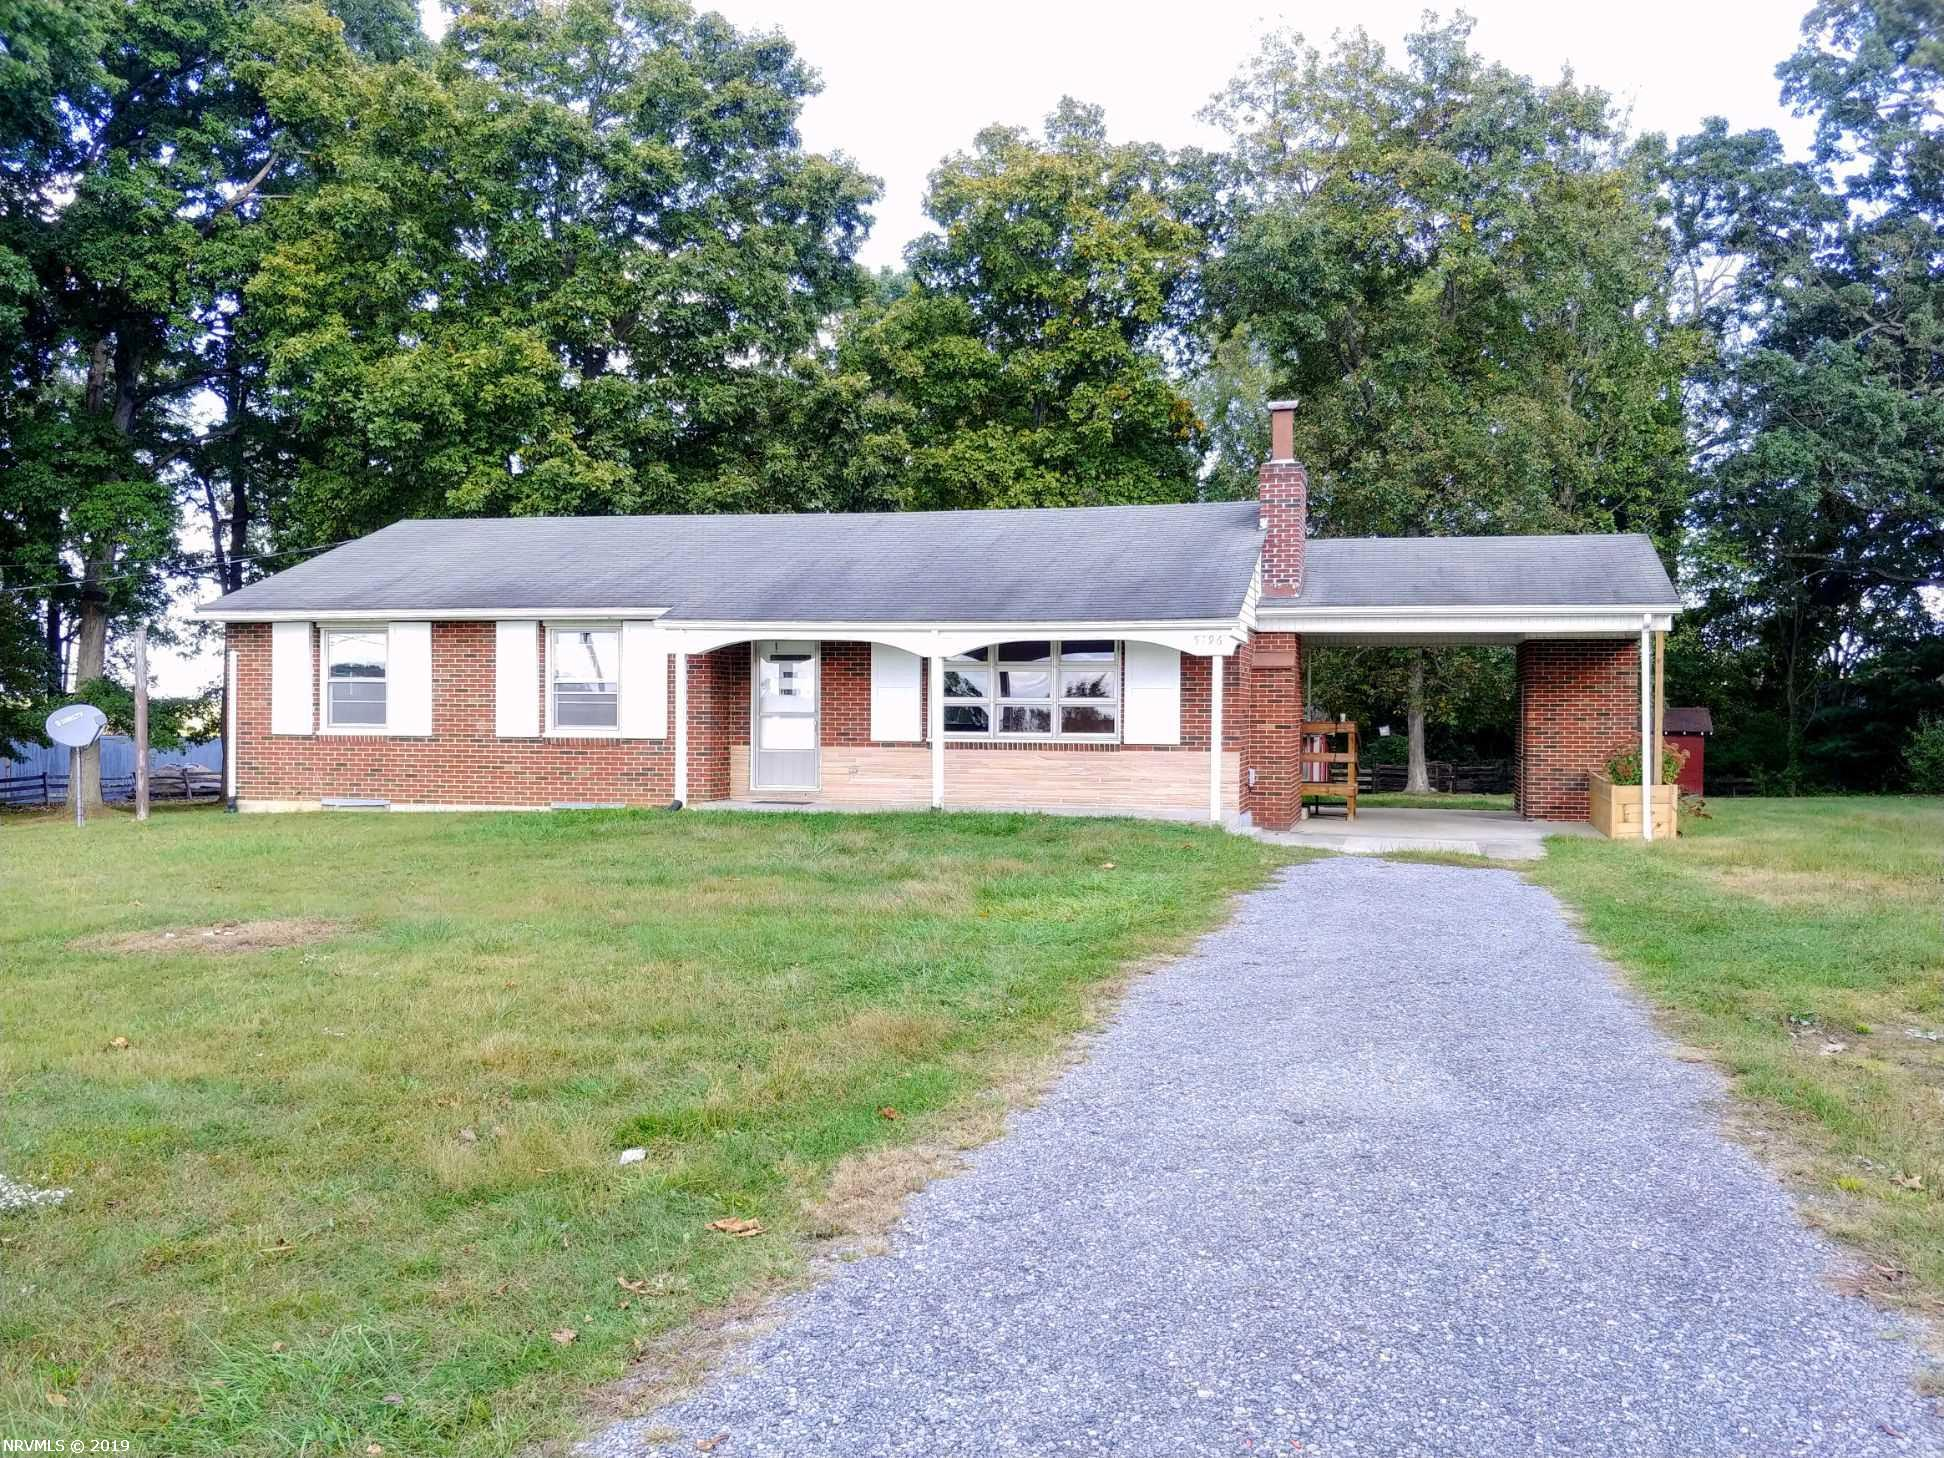 This home is located close to Claytor Lake on 1.15 acres.  The home offers 4 bedrooms one full bath with beautiful refinished hardwood floors.  You will enjoy keeping warm in your living room by the fireplace this winter.  This location is convenient to Radford University, Va. Tech, New River Community College only 2 minutes from I-81. Come take a look at all the amenities the home offers storage under the carport and pizza oven, garage-work shop and out building.  Part of the basement is unfinished and has lots of storage with  shelves  and possible work shop area also the other side could be turned into a rental or mother-in law suite with bedroom, kitchenette area and outside access.